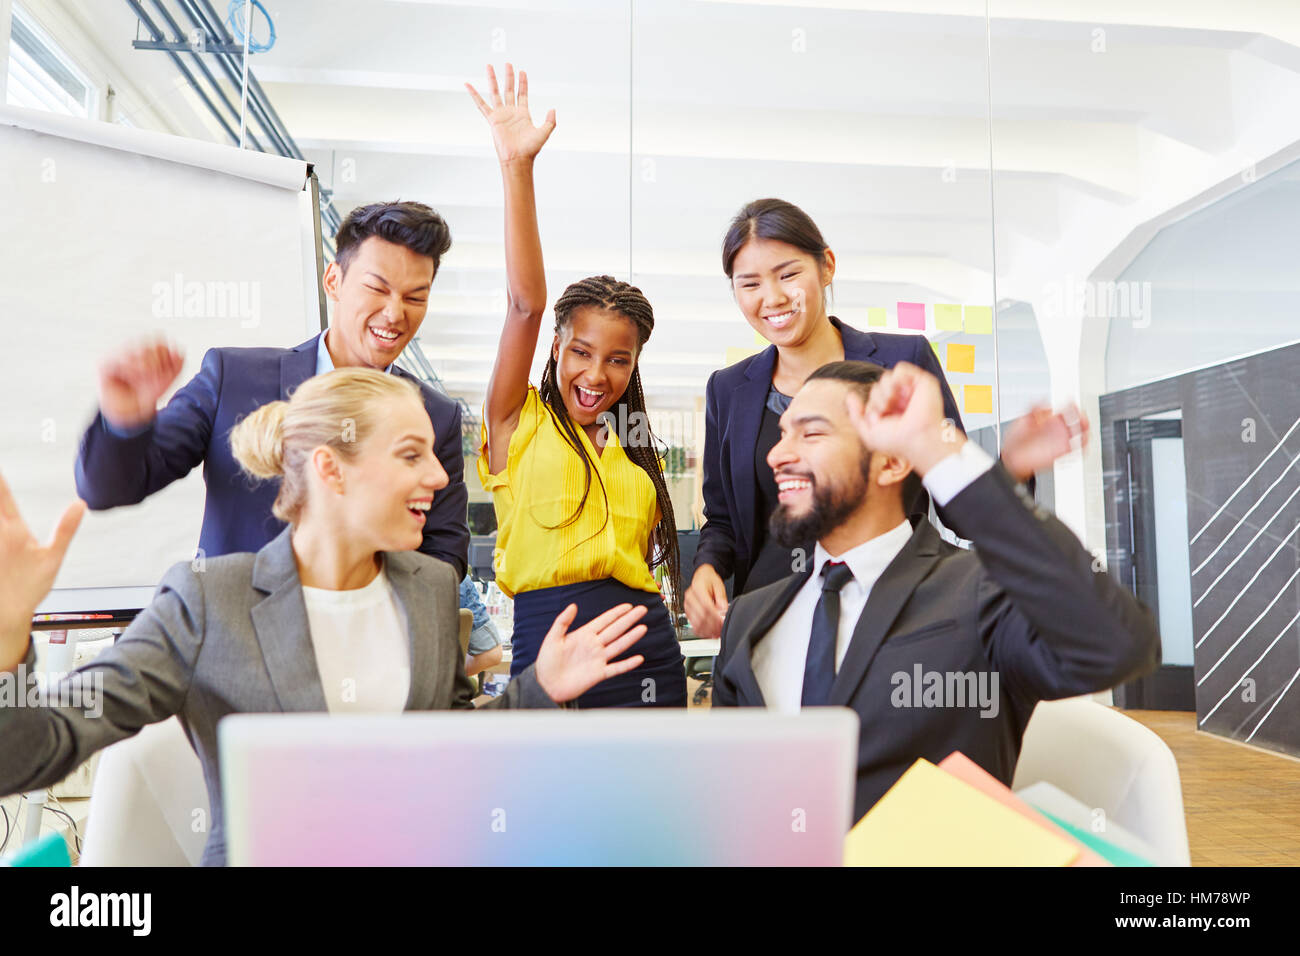 Founders of start-up celebrating with enthusiasm and cheering at the office - Stock Image